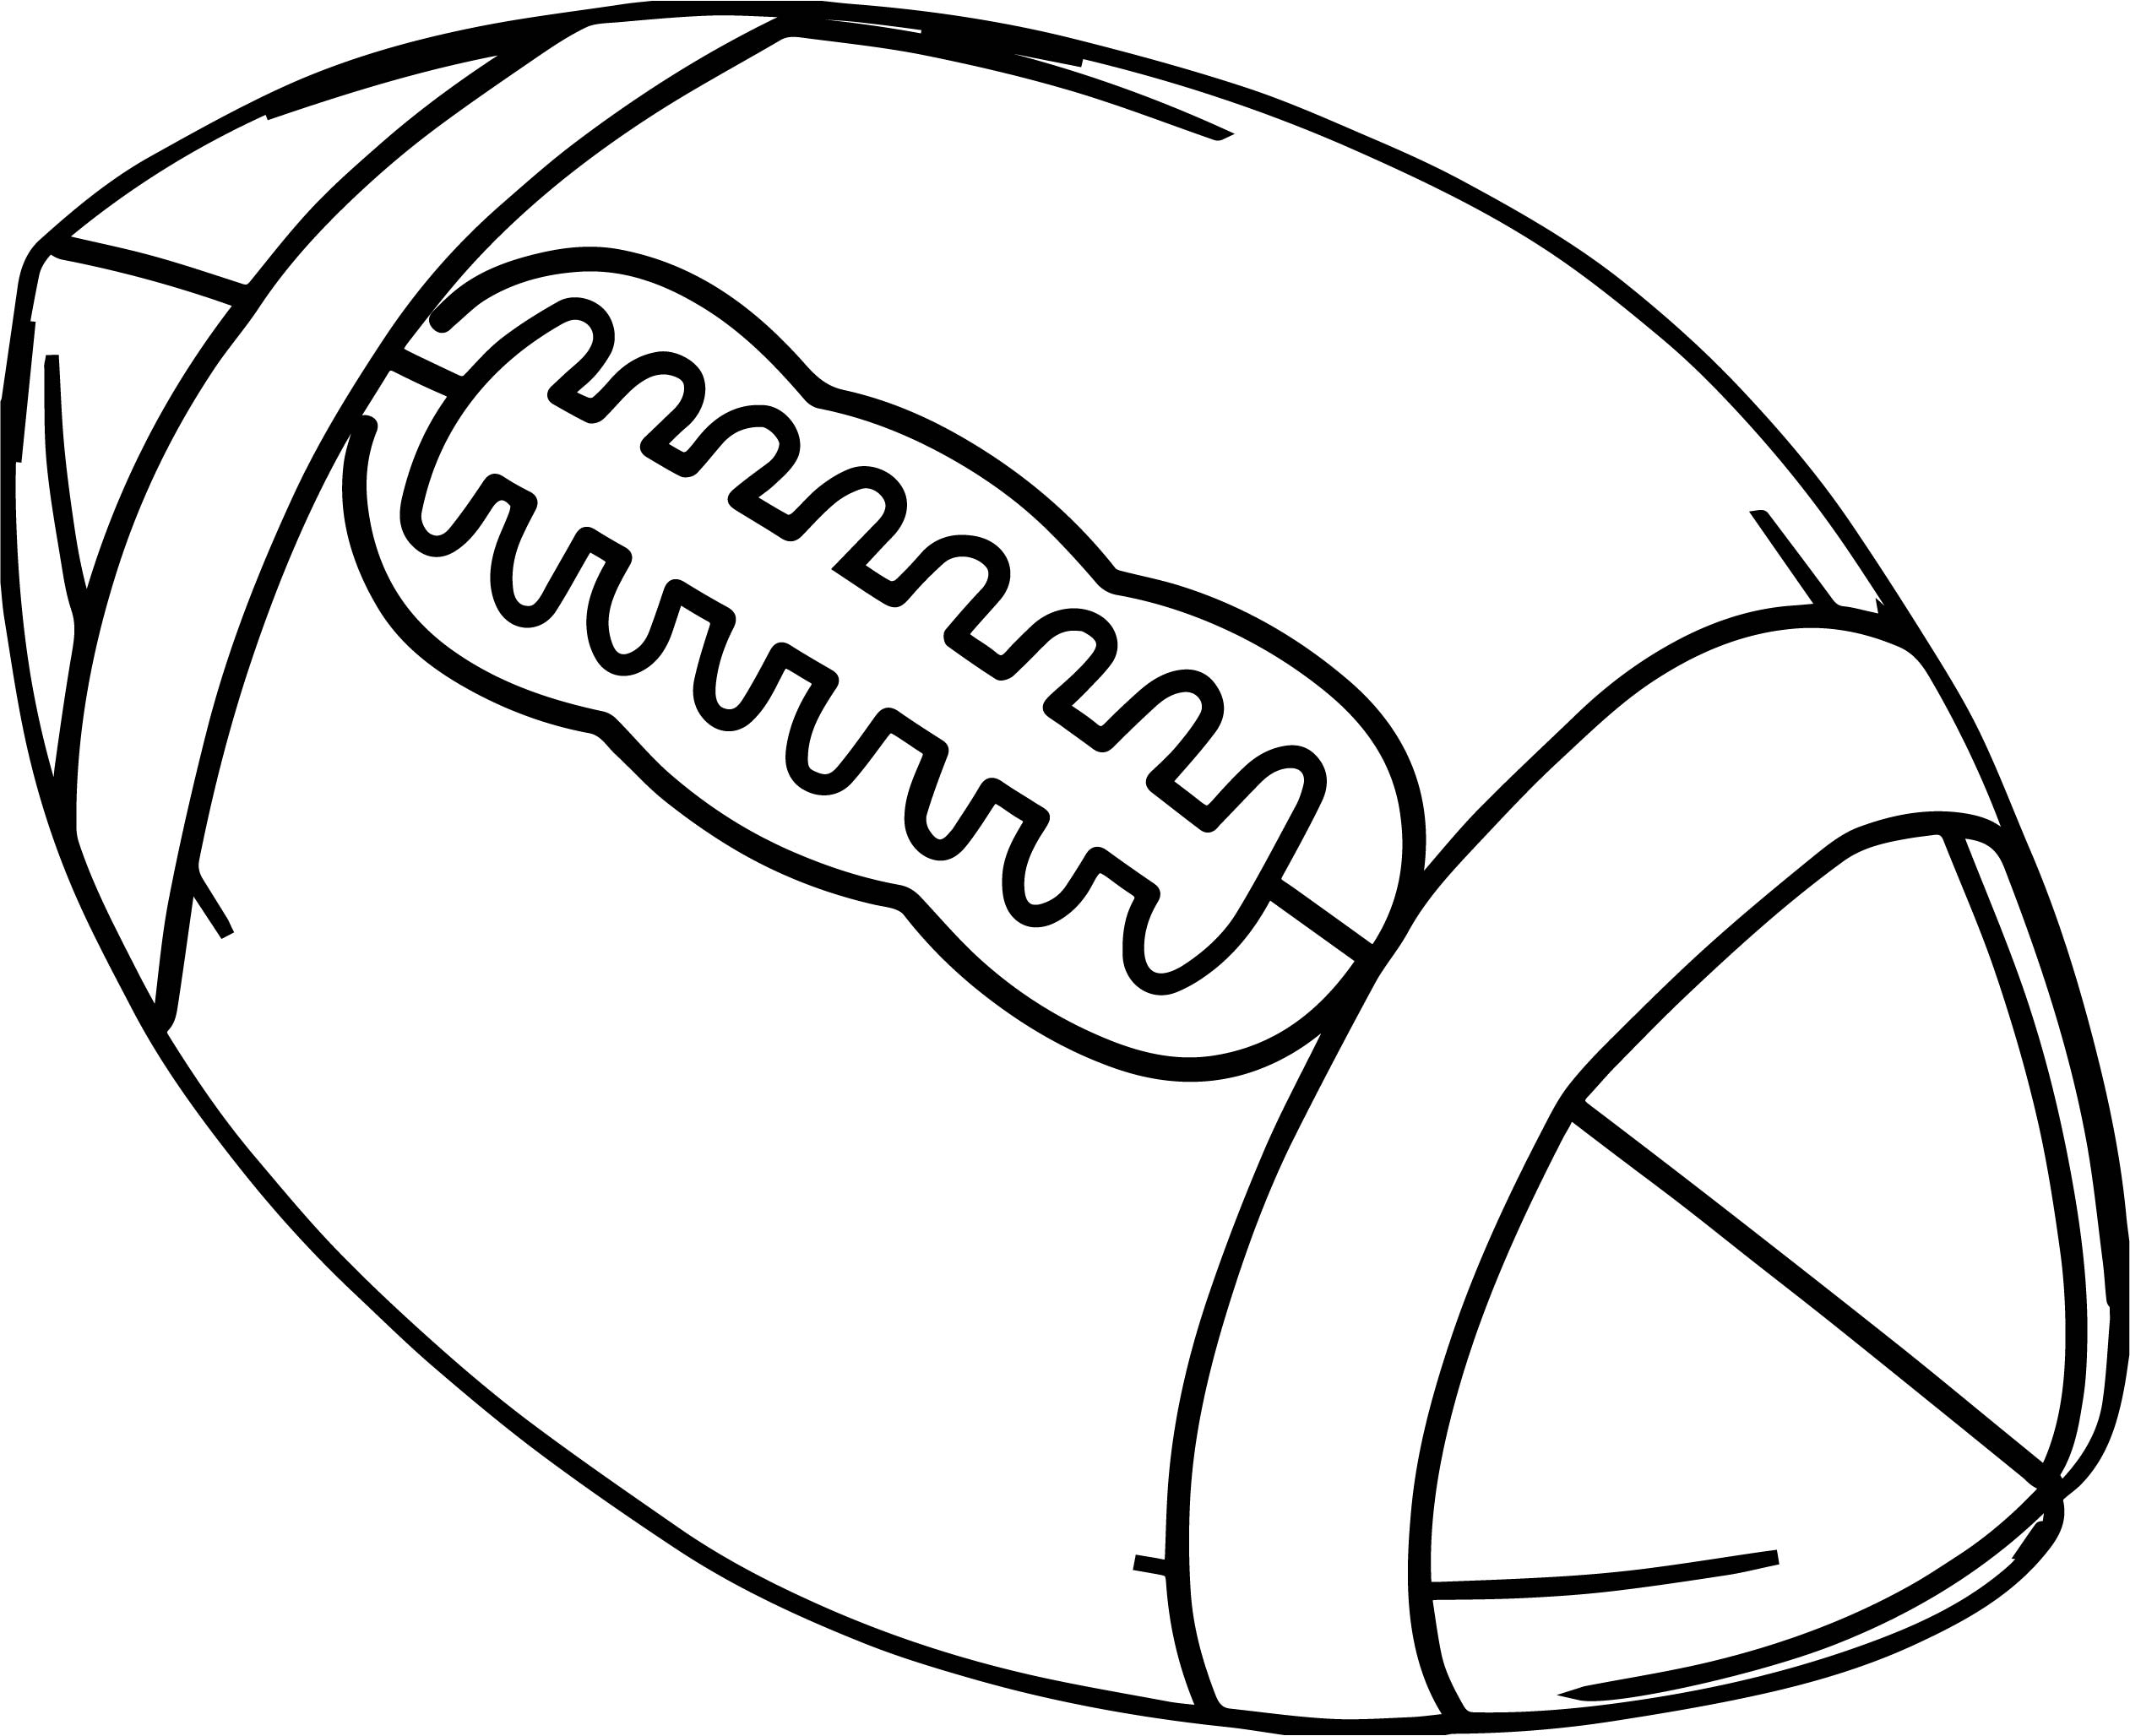 2522x2056 Alabama Football Ball Coloring Page Wecoloringpage